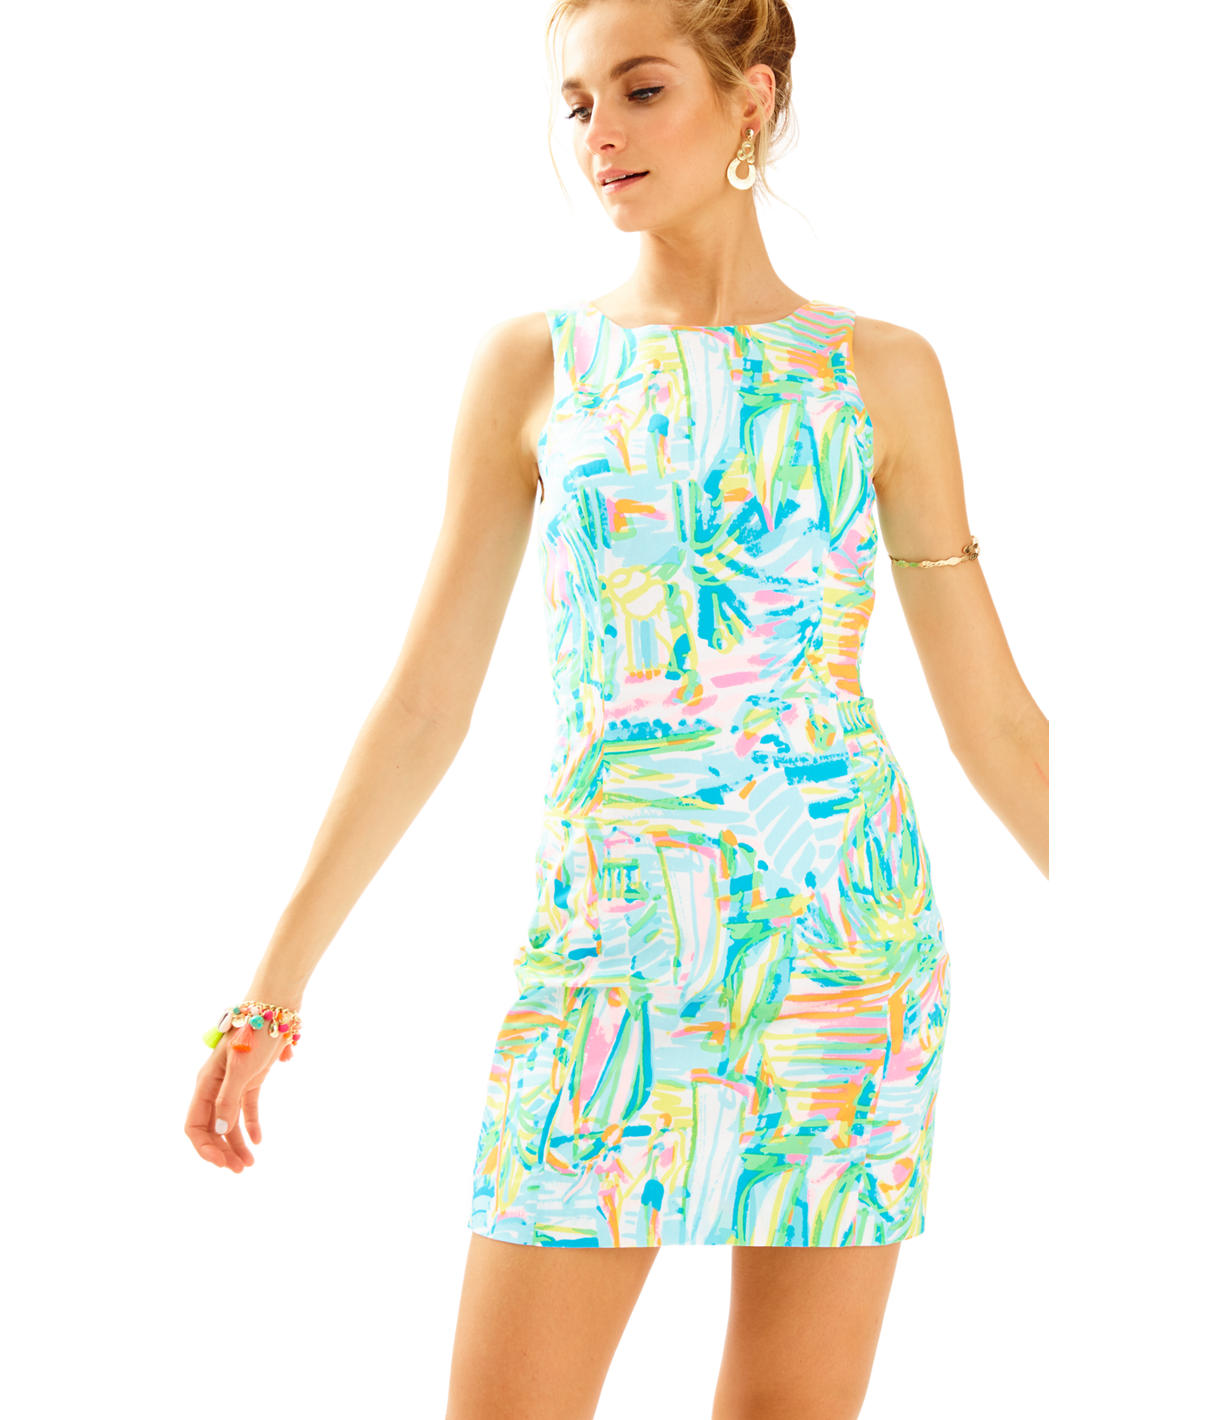 Lilly Pulitzer Courtney Shift Dress